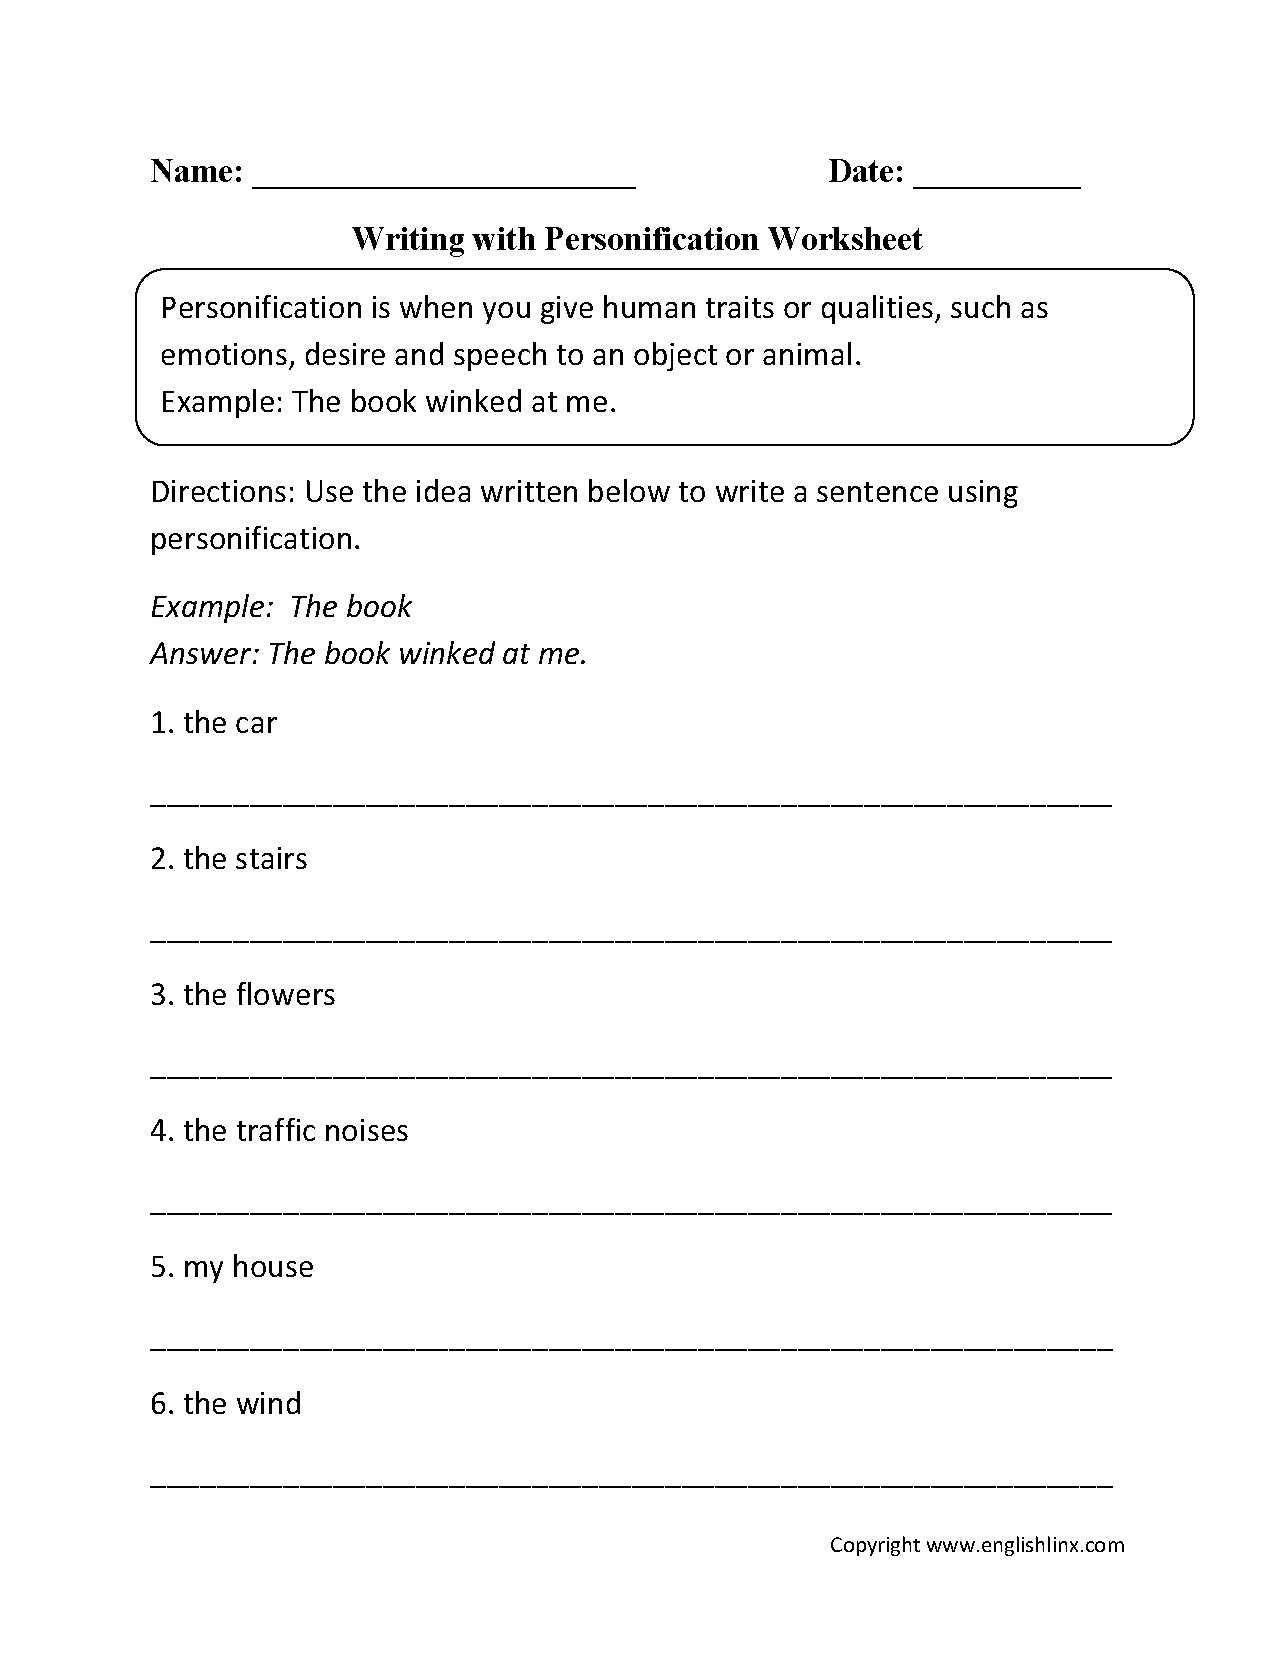 medium resolution of Writing with Personification Worksheet   Personification